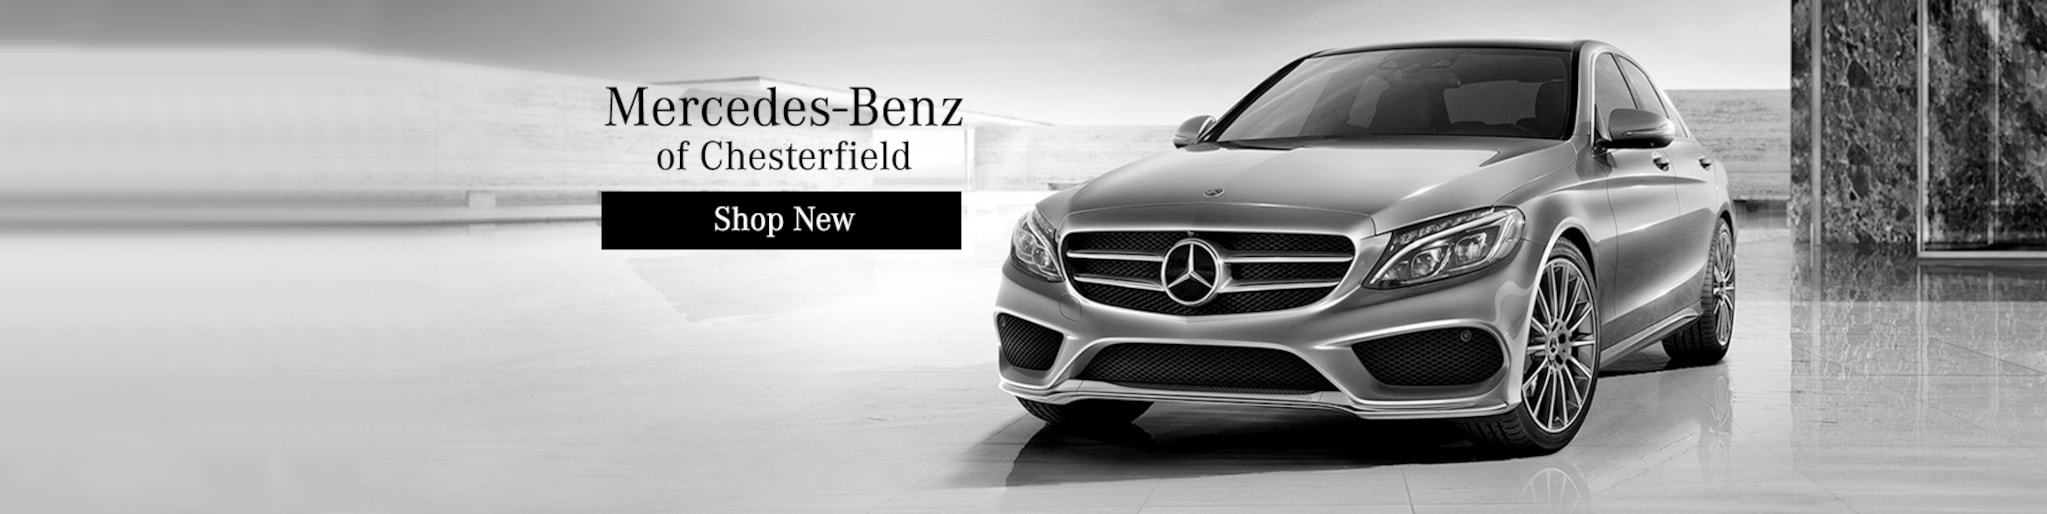 Mercedes benz chesterfield serving st louis mo mercedes for St charles mercedes benz dealership